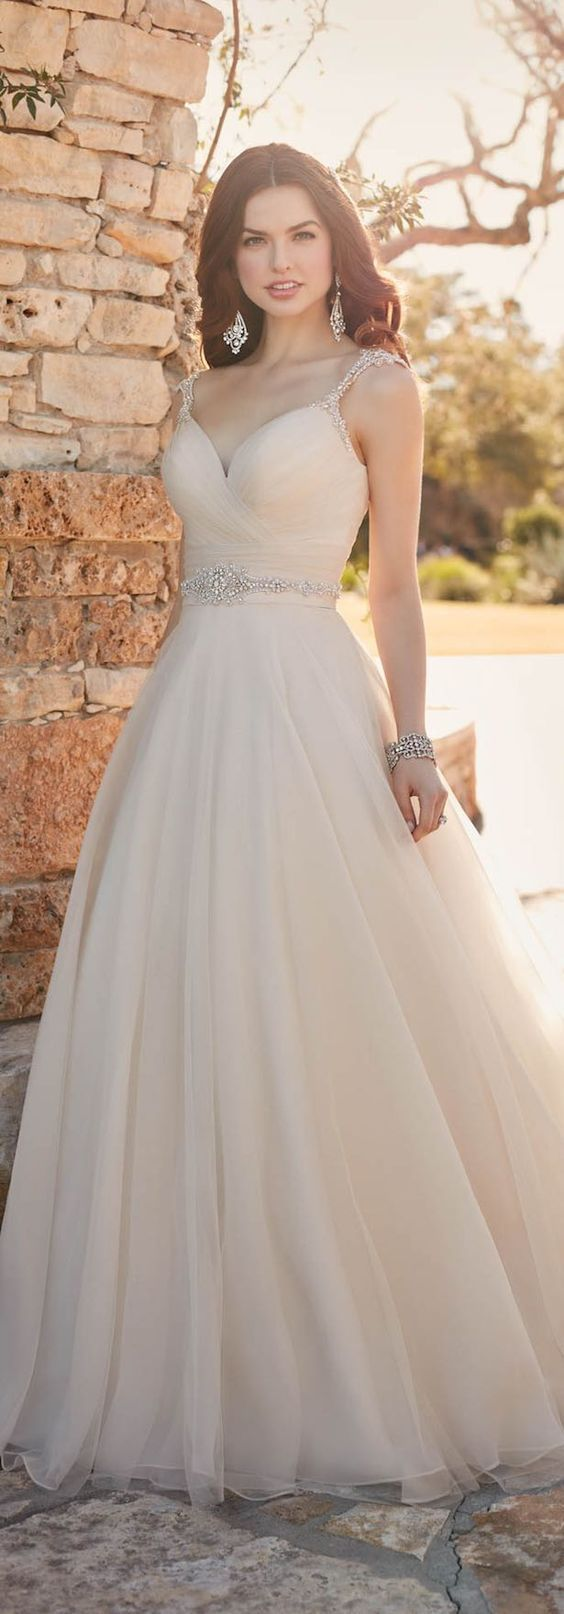 332 best Classy Wedding Dresses images on Pinterest Wedding